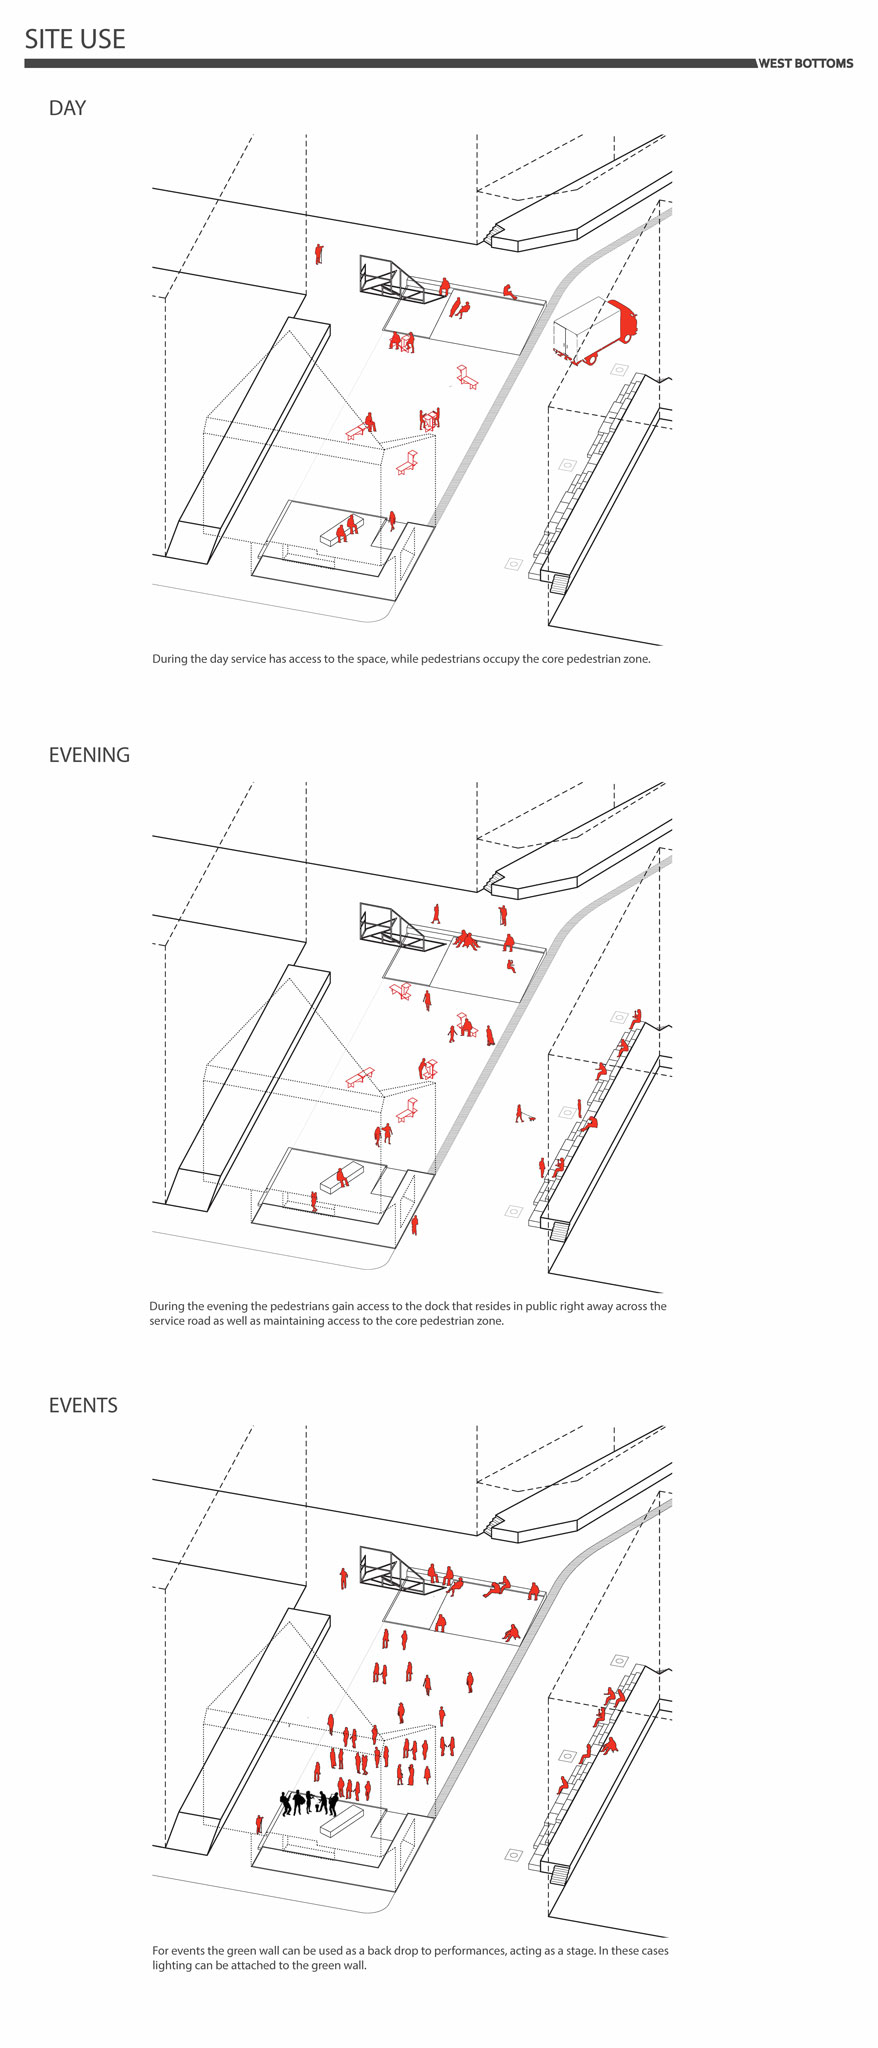 The diagram maps varying purposes of space at different times and conditions.   View a pdf of this image to zoom in.